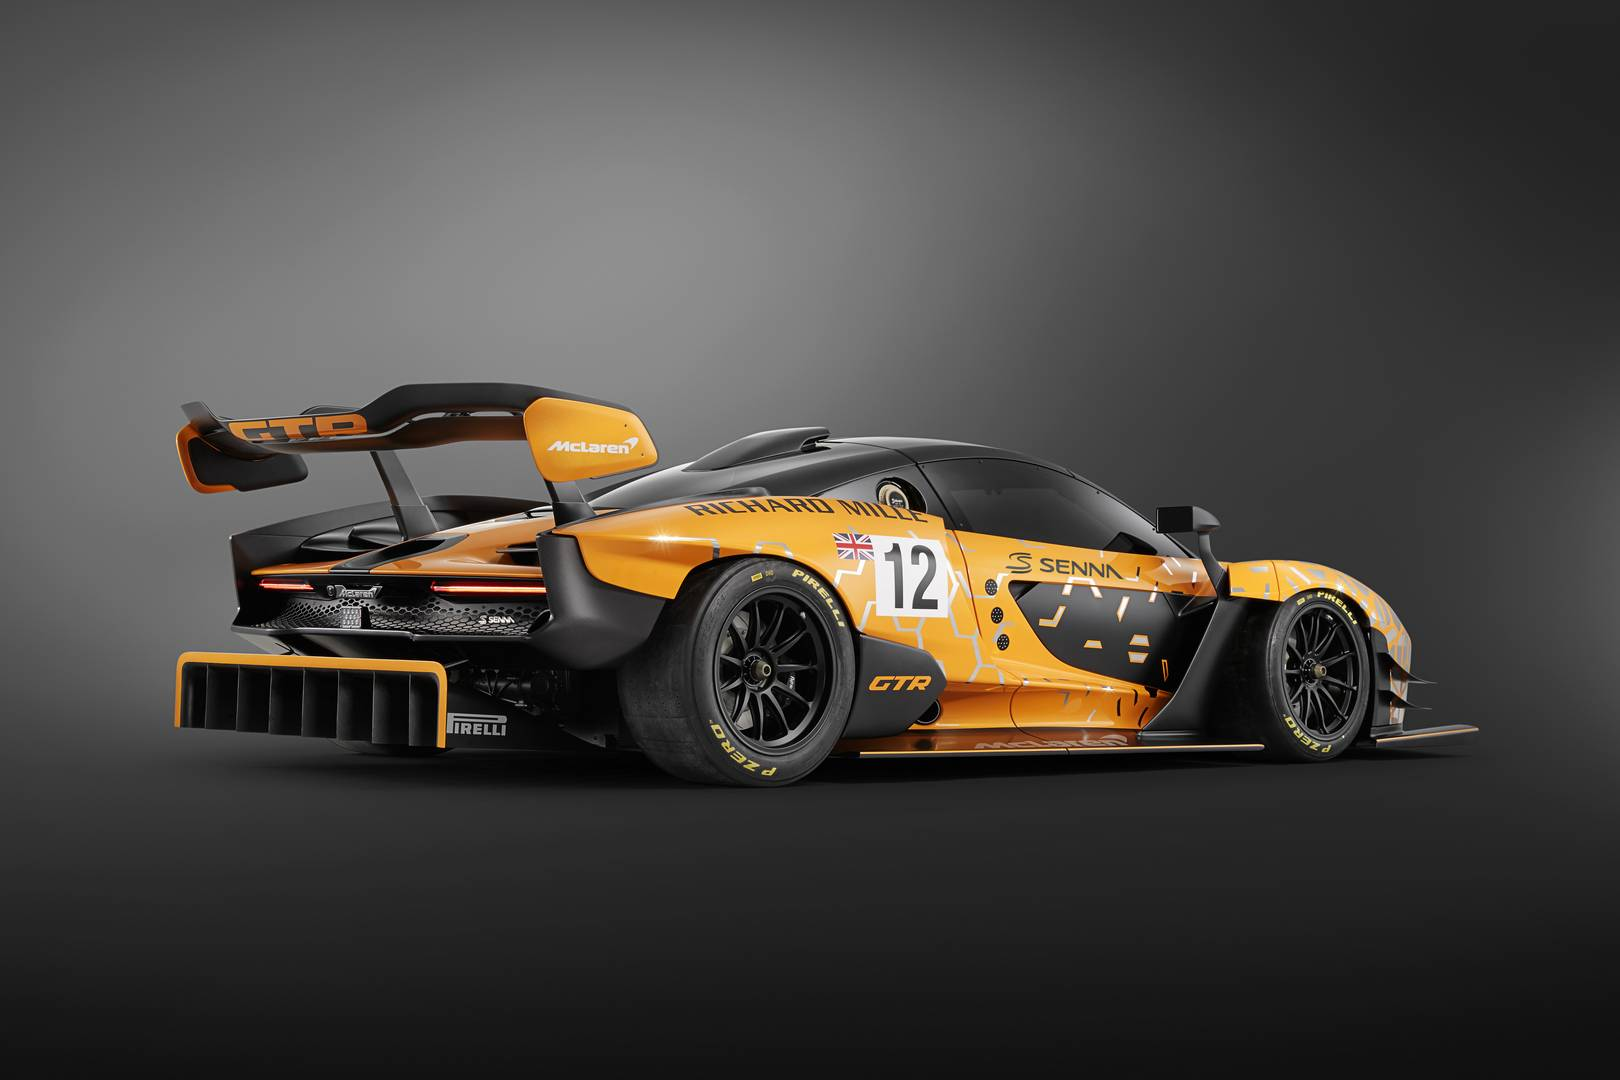 McLaren Senna GTR Concept previews upcoming track monster